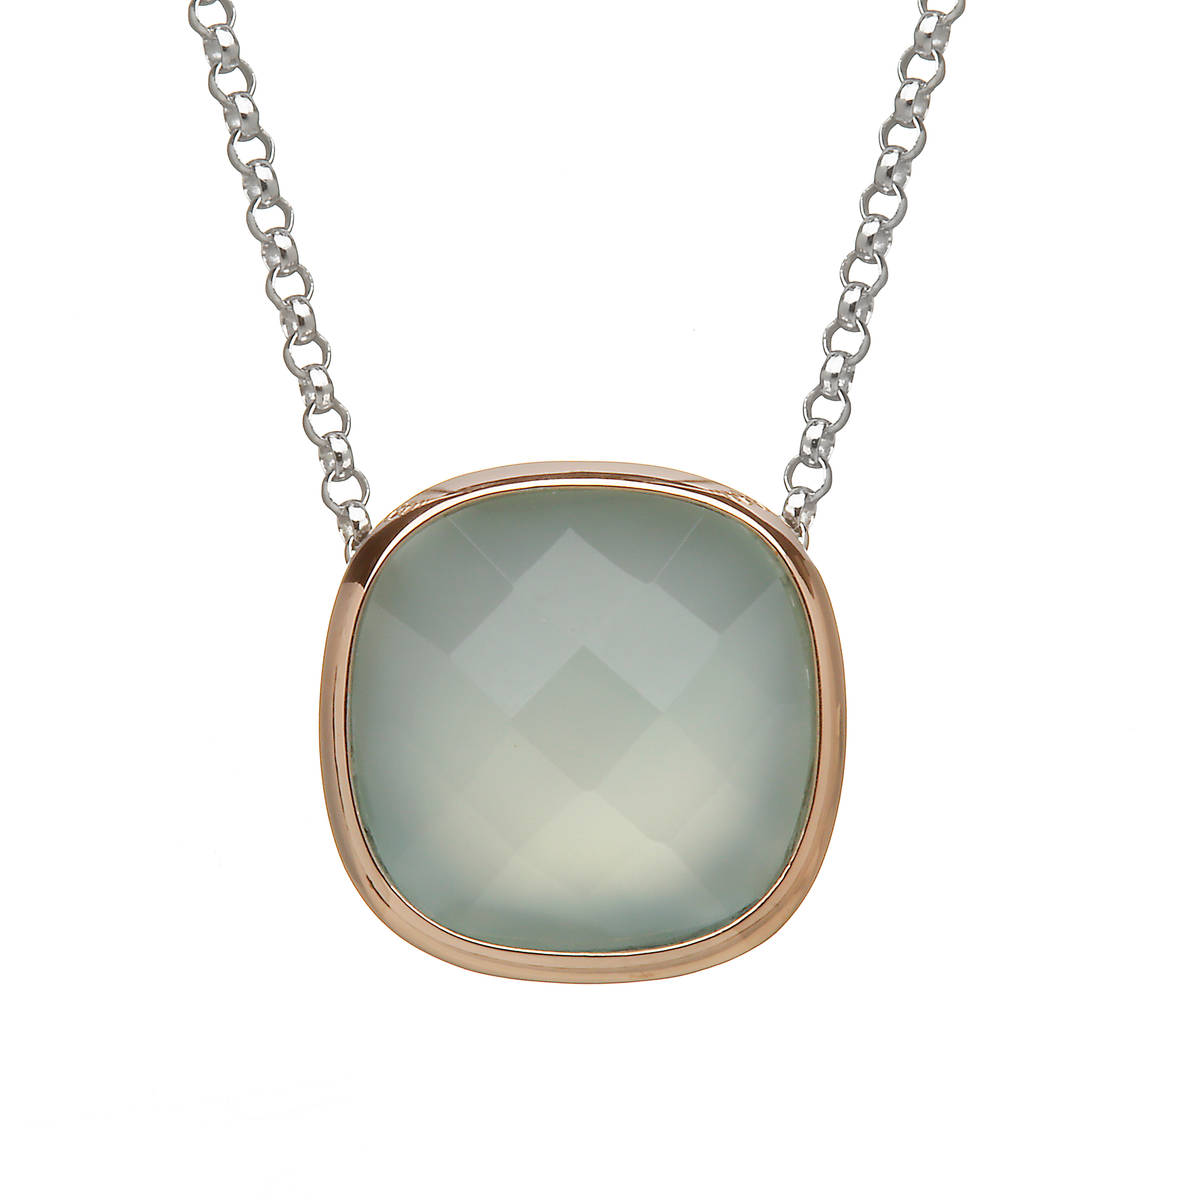 H of L silver/rose gold pendant with blue chalcedony stone outer rim made from rare Irish gold